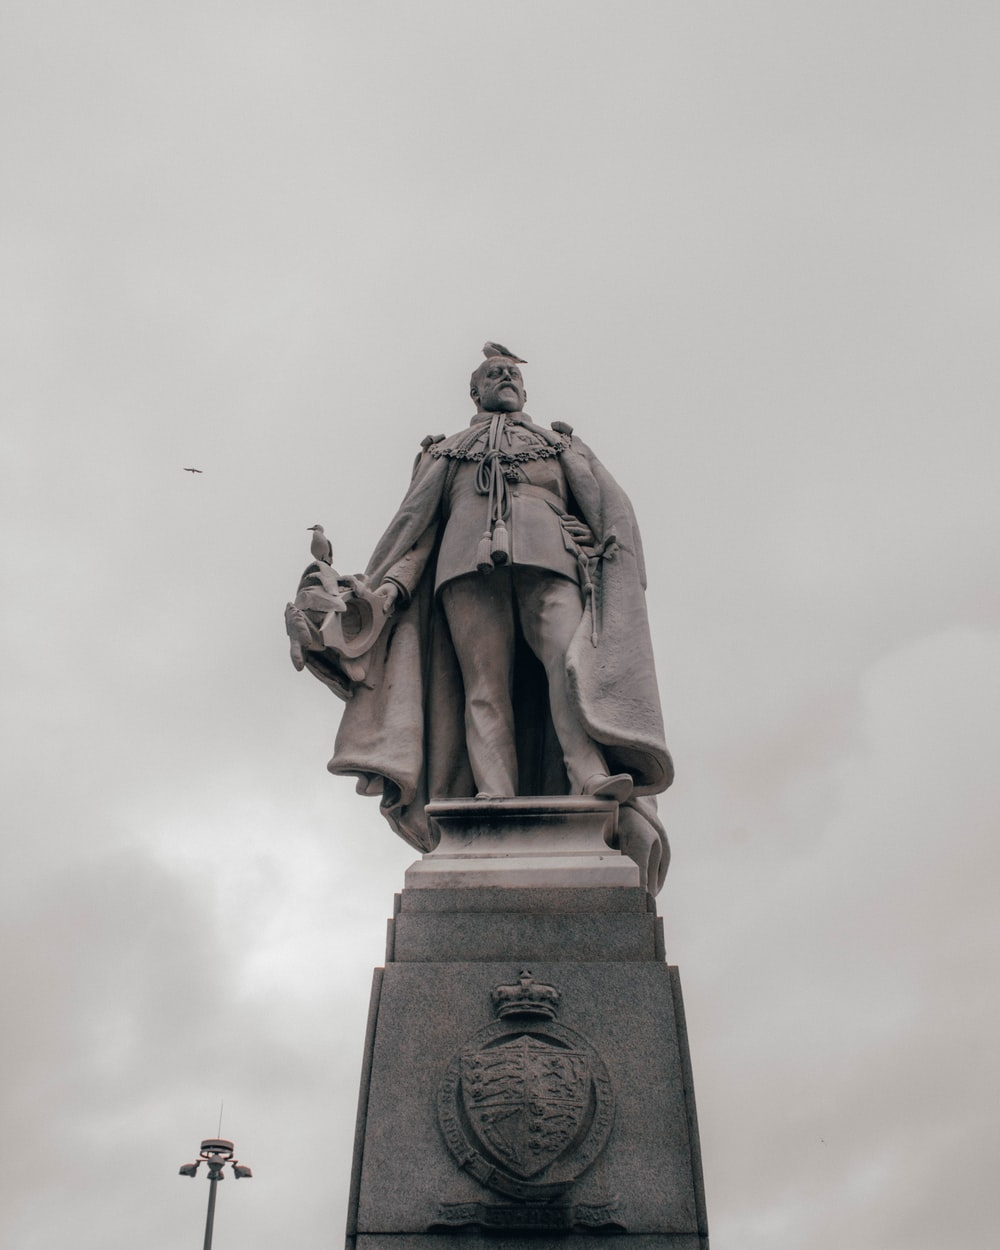 man in coat statue under white sky during daytime